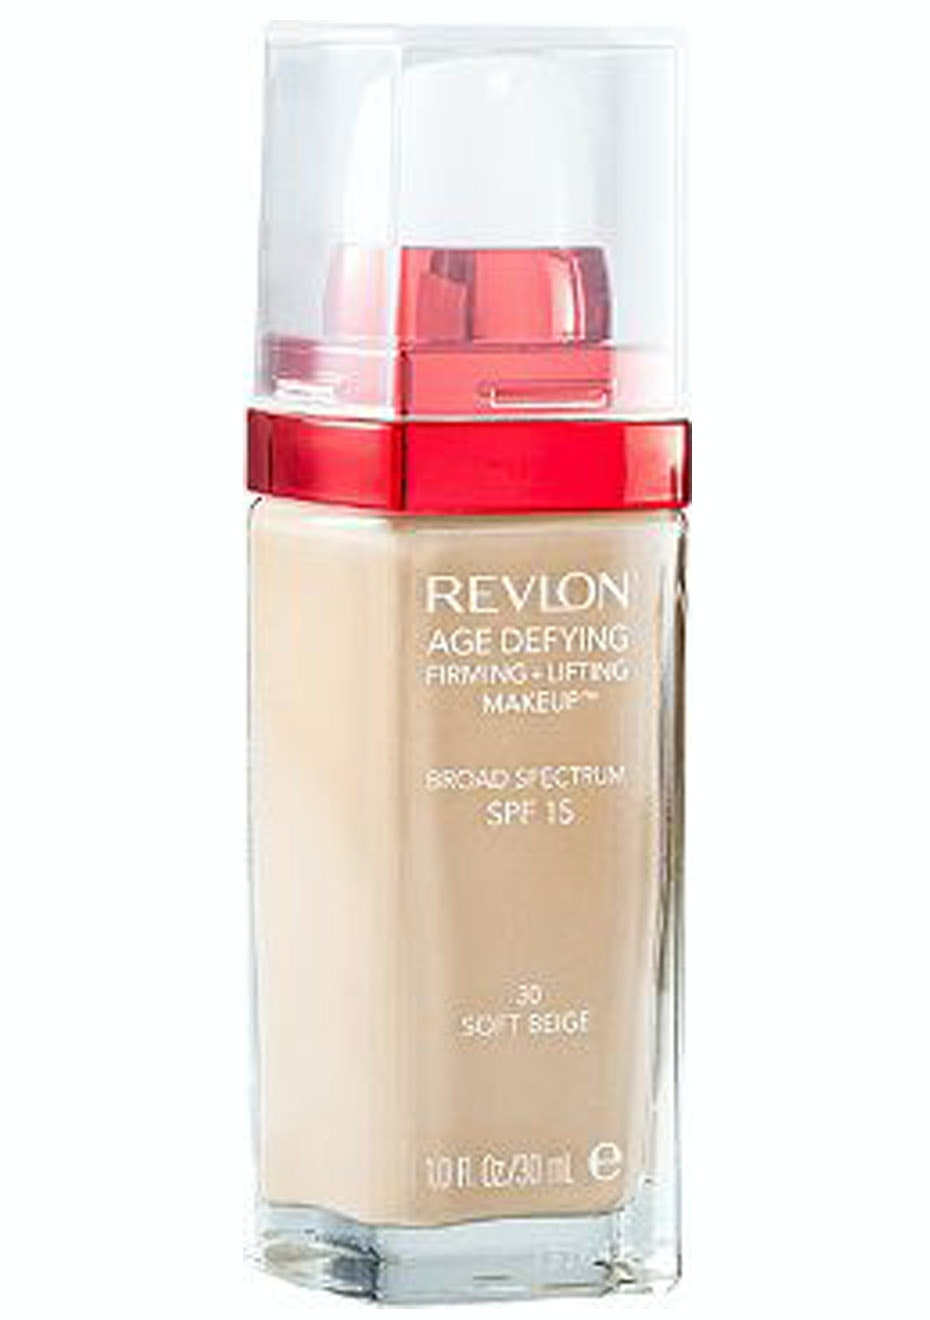 Revlon Age Defying Firming+Lifting MakeUp 30 Soft Beige